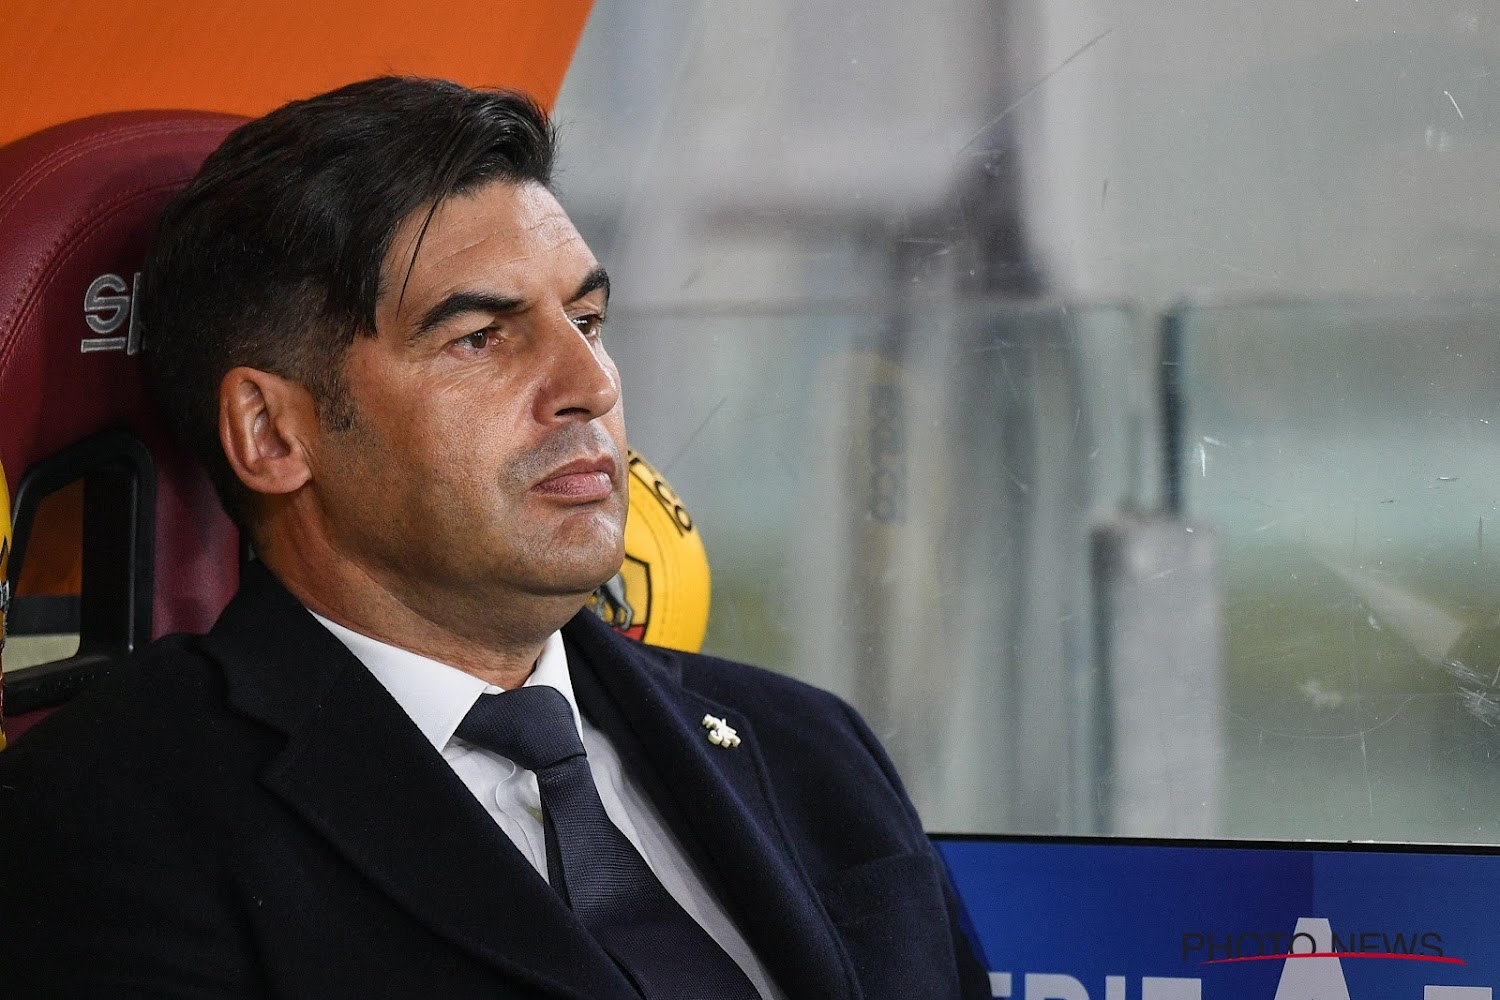 Roma manager Paulo Fonseca made 6 changes instead of 5 in the Cup against  La Spezia – all football